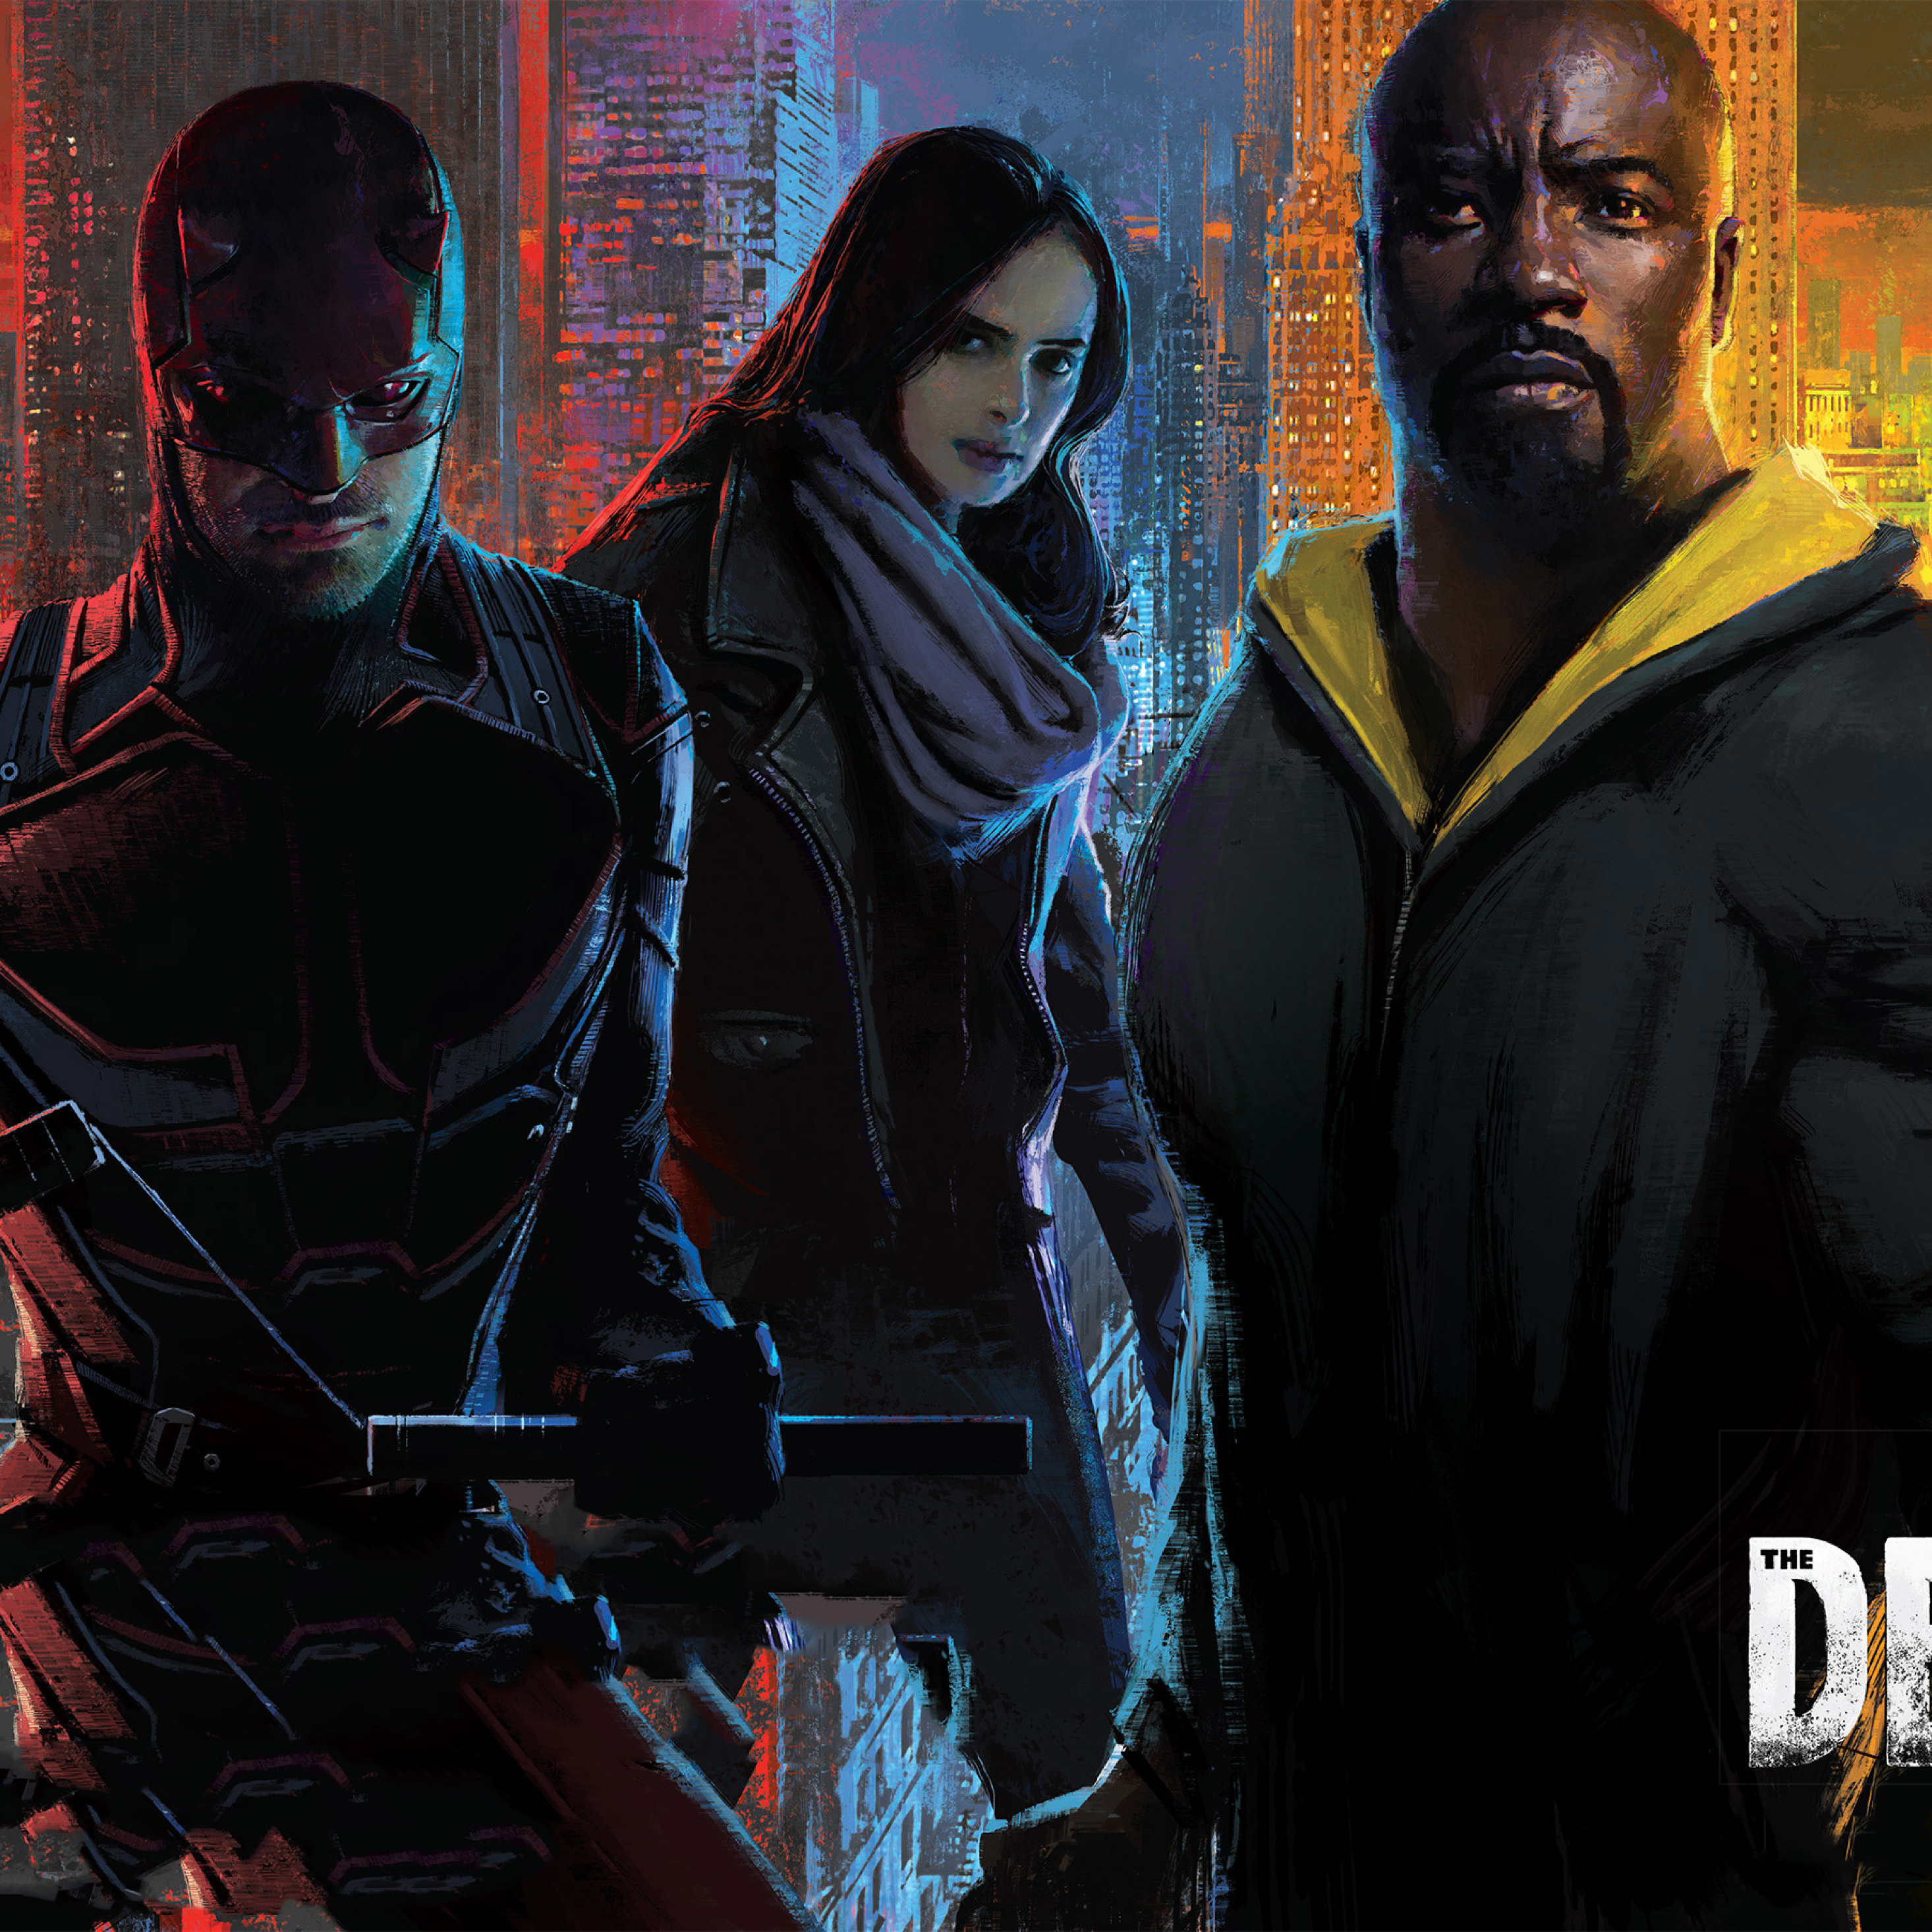 The Defenders Tv Show, Full HD 2K Wallpaper